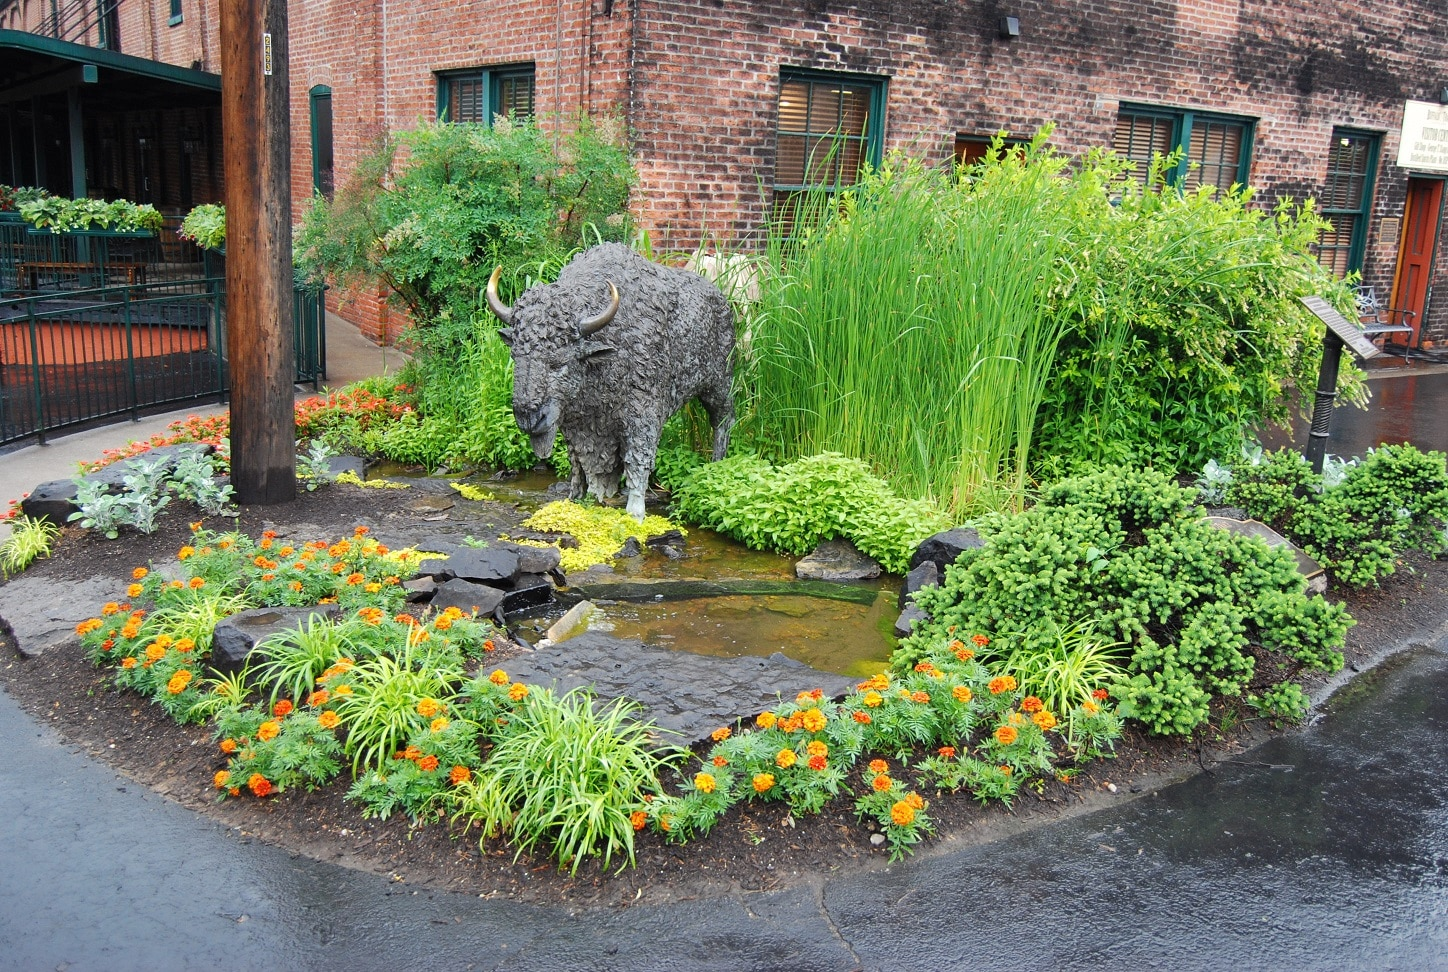 Garden with a grey buffalo statue within orange flowers and tall green grasses sitting in front of a red brick building